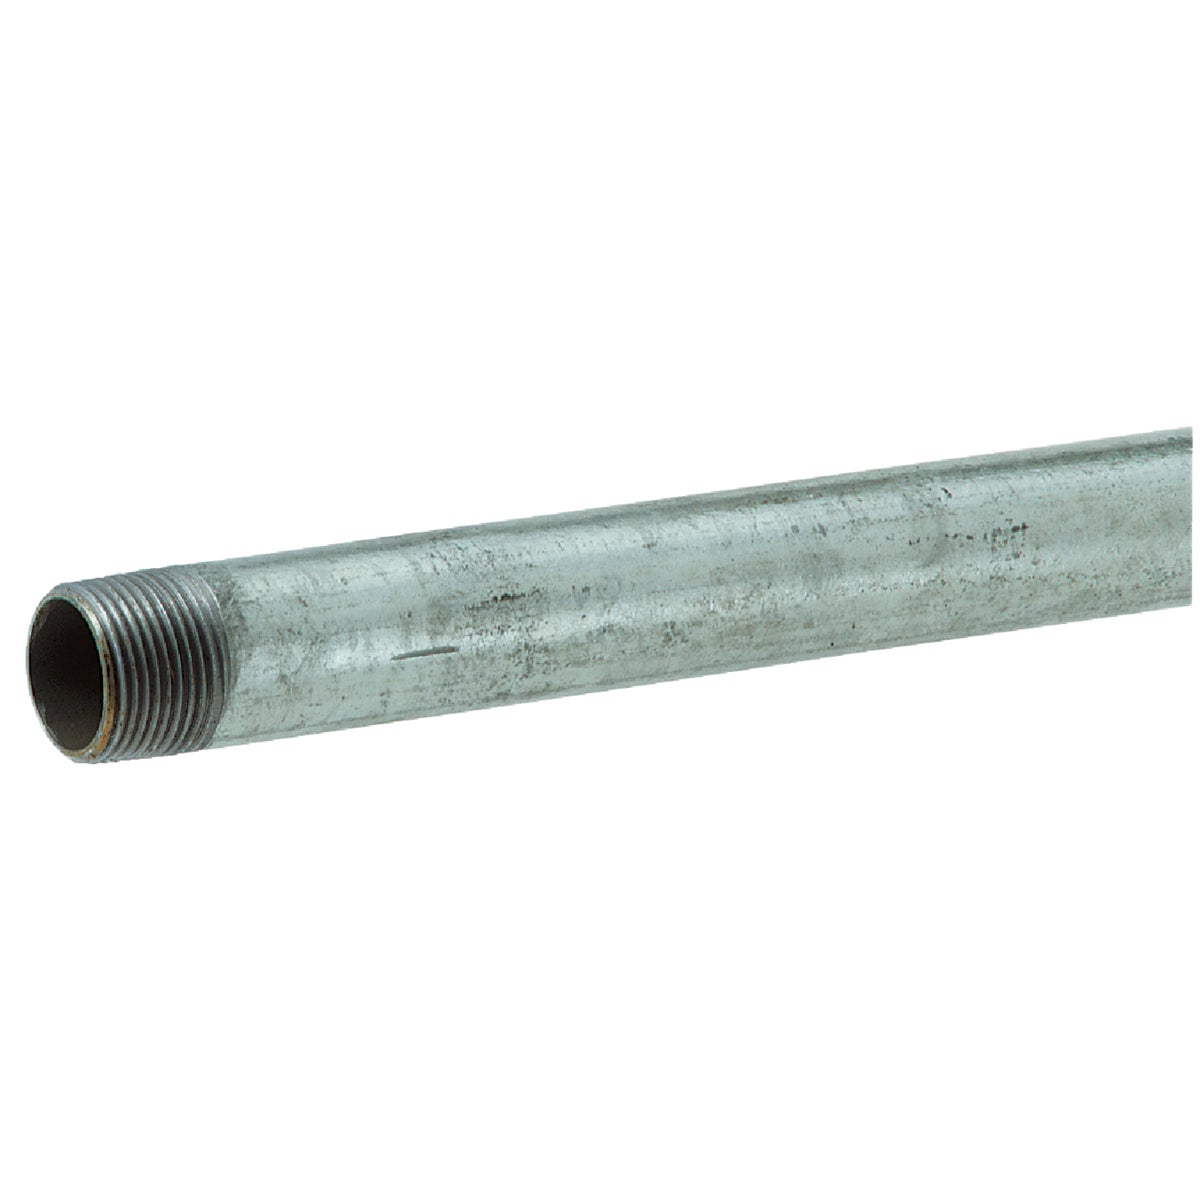 1-1/2X24 GLV RDI-CT PIPE - 11/2X24 by Southland Pipe Nippl